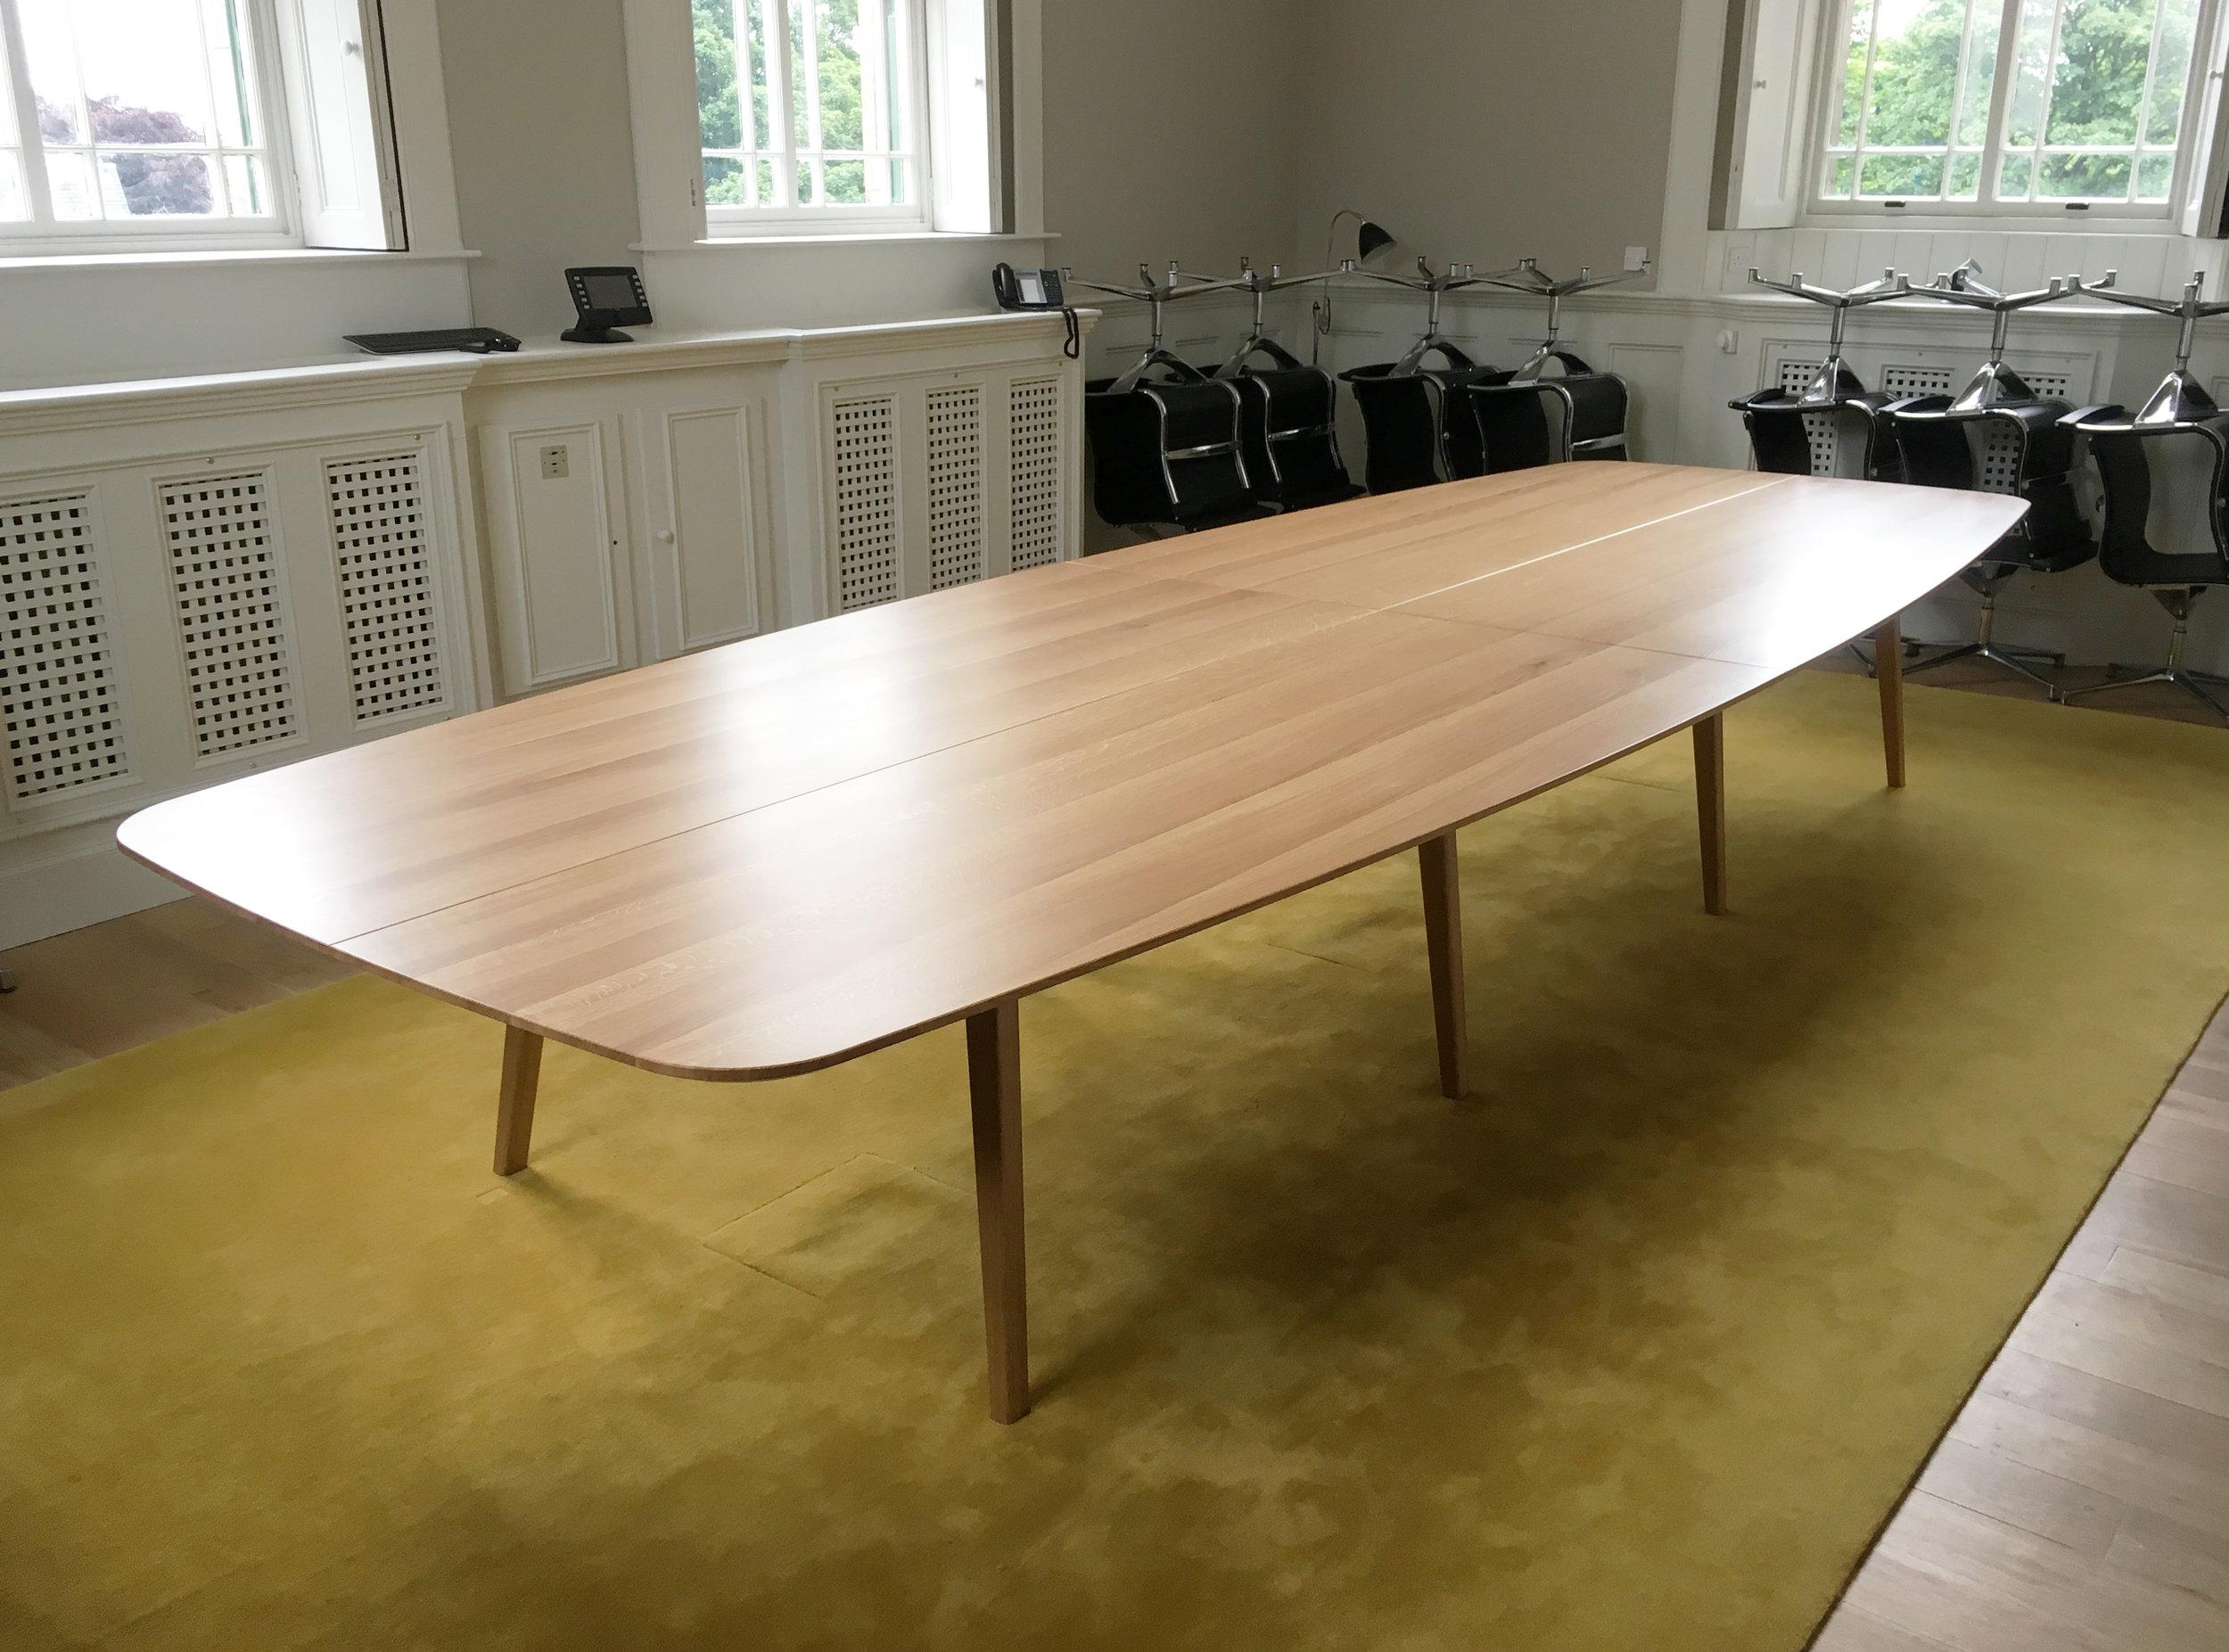 European oak board table